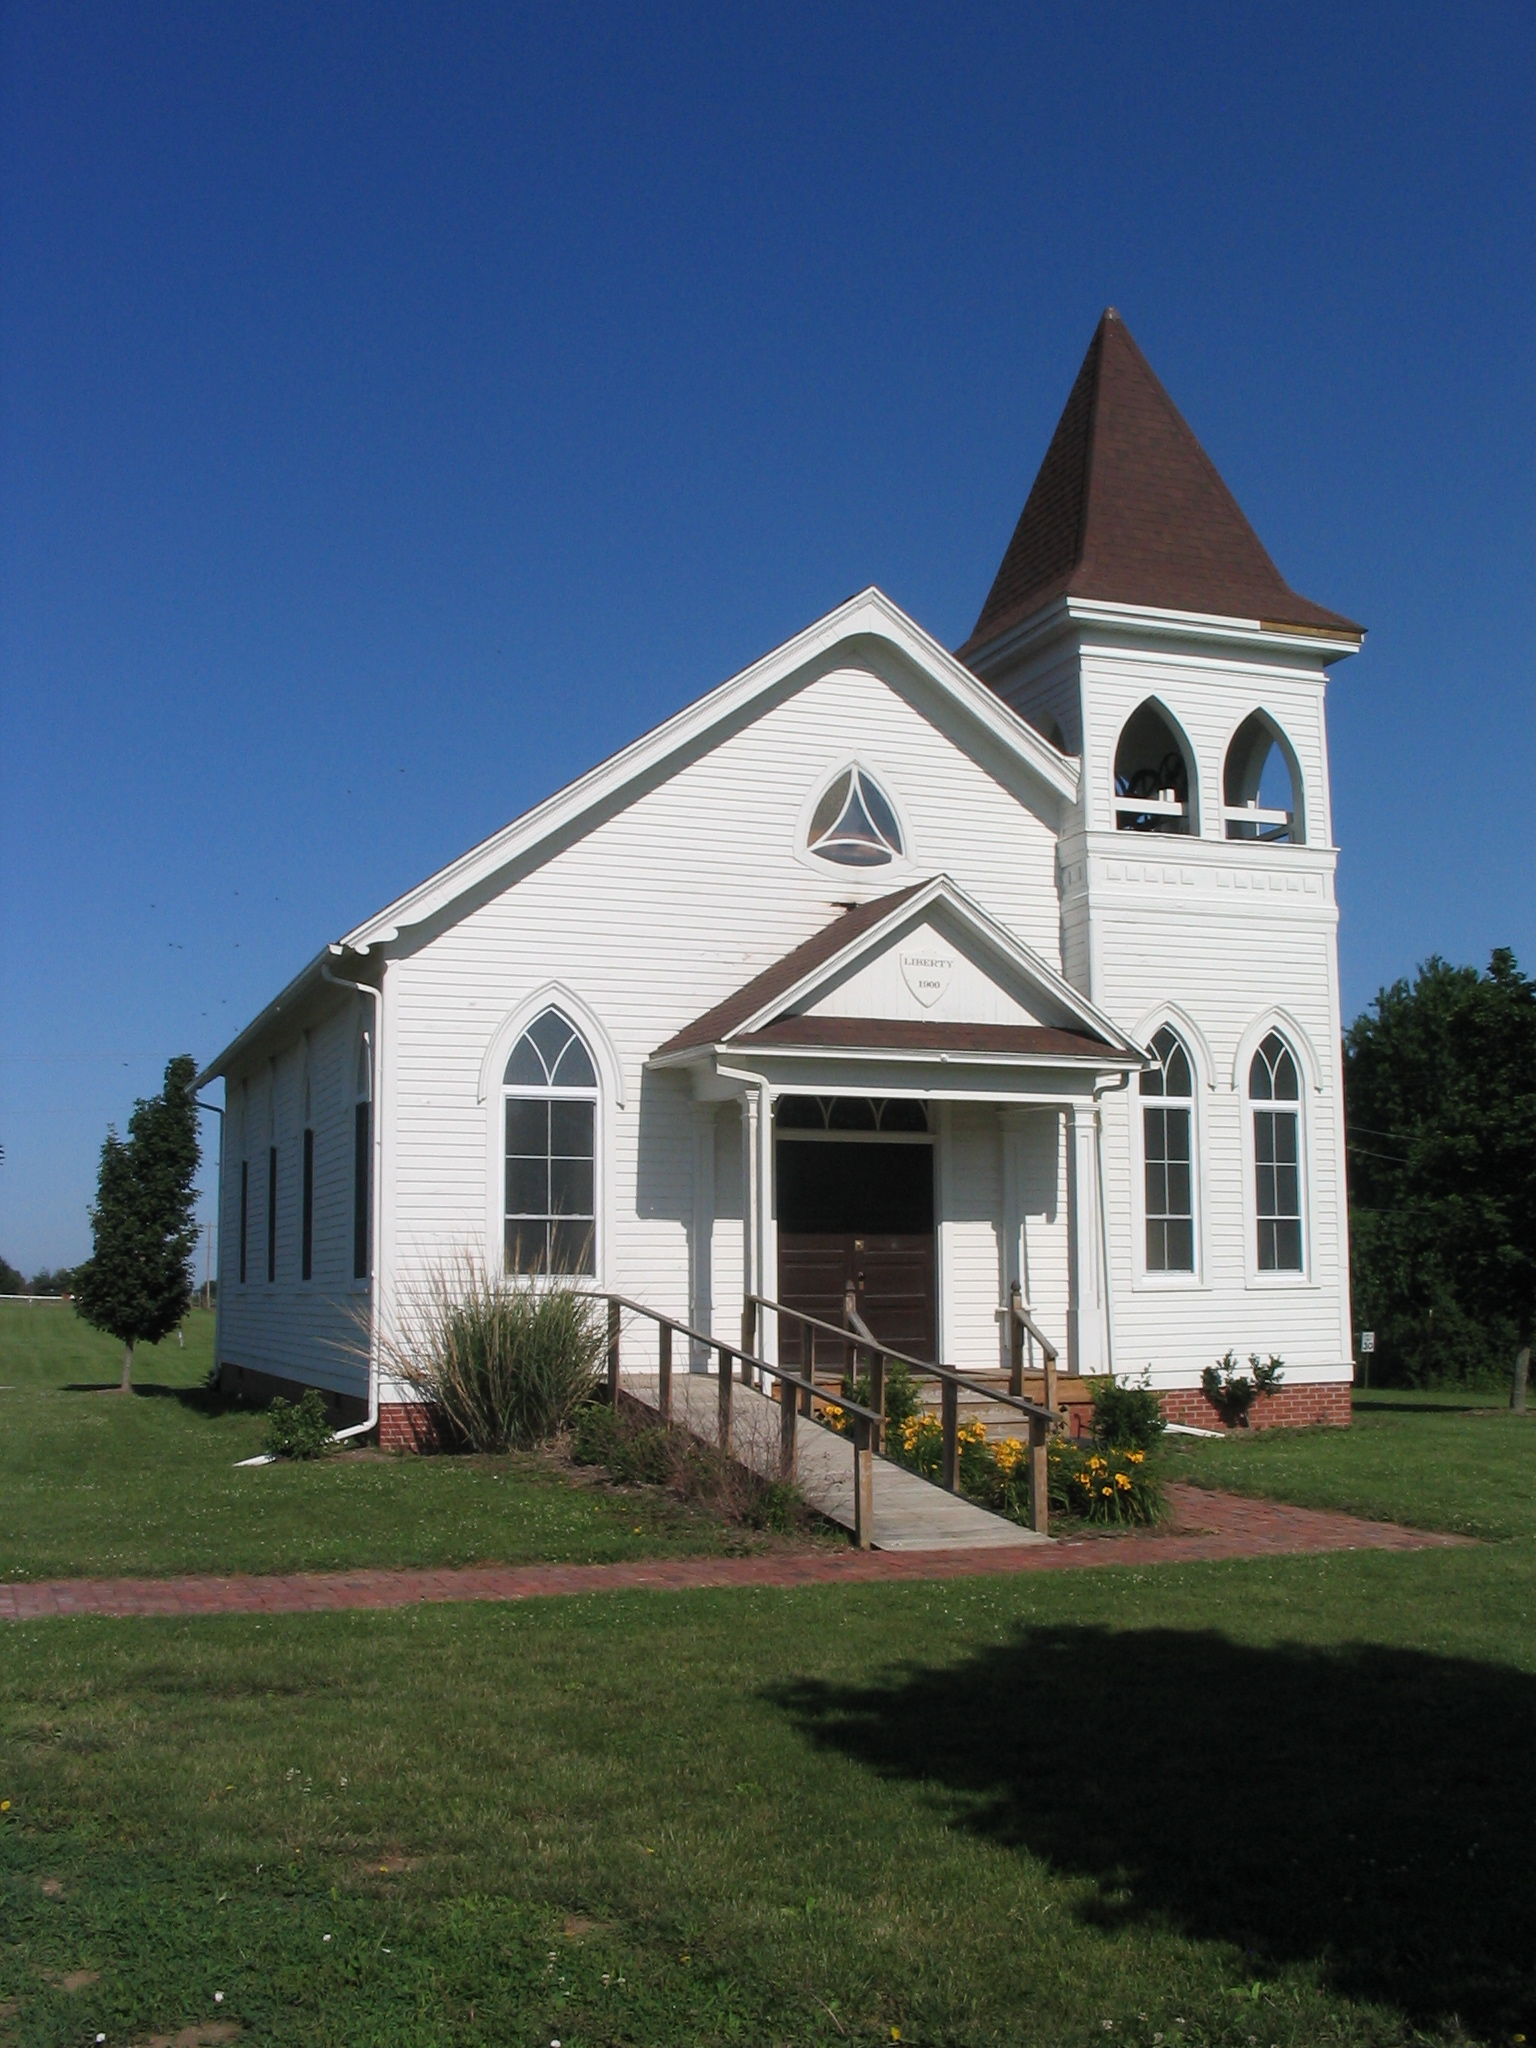 The old church on the grounds